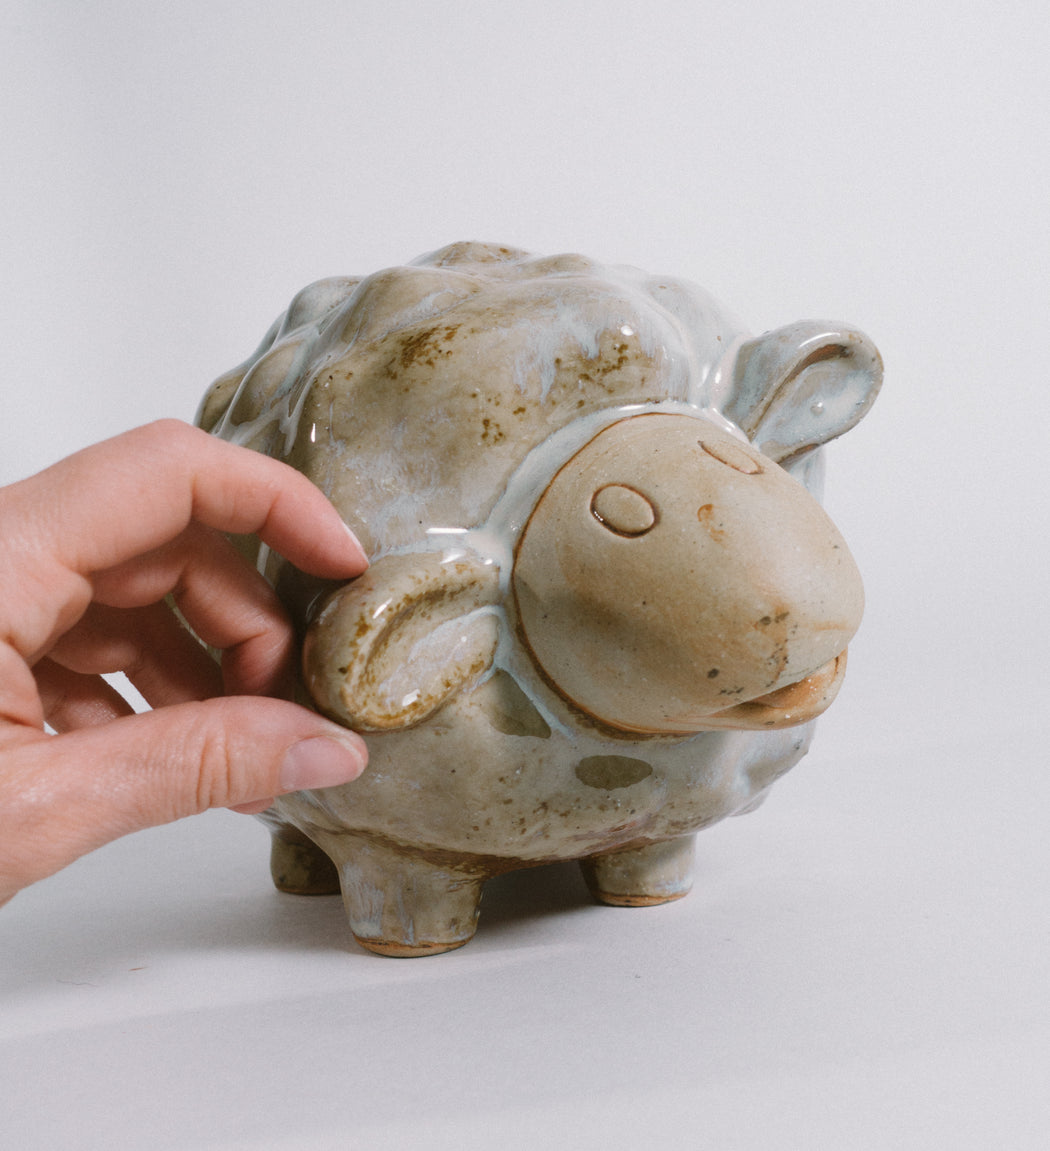 Vintage Studio Pottery Lamb | Sheep Figurine | Whimsical Farmhouse Decor